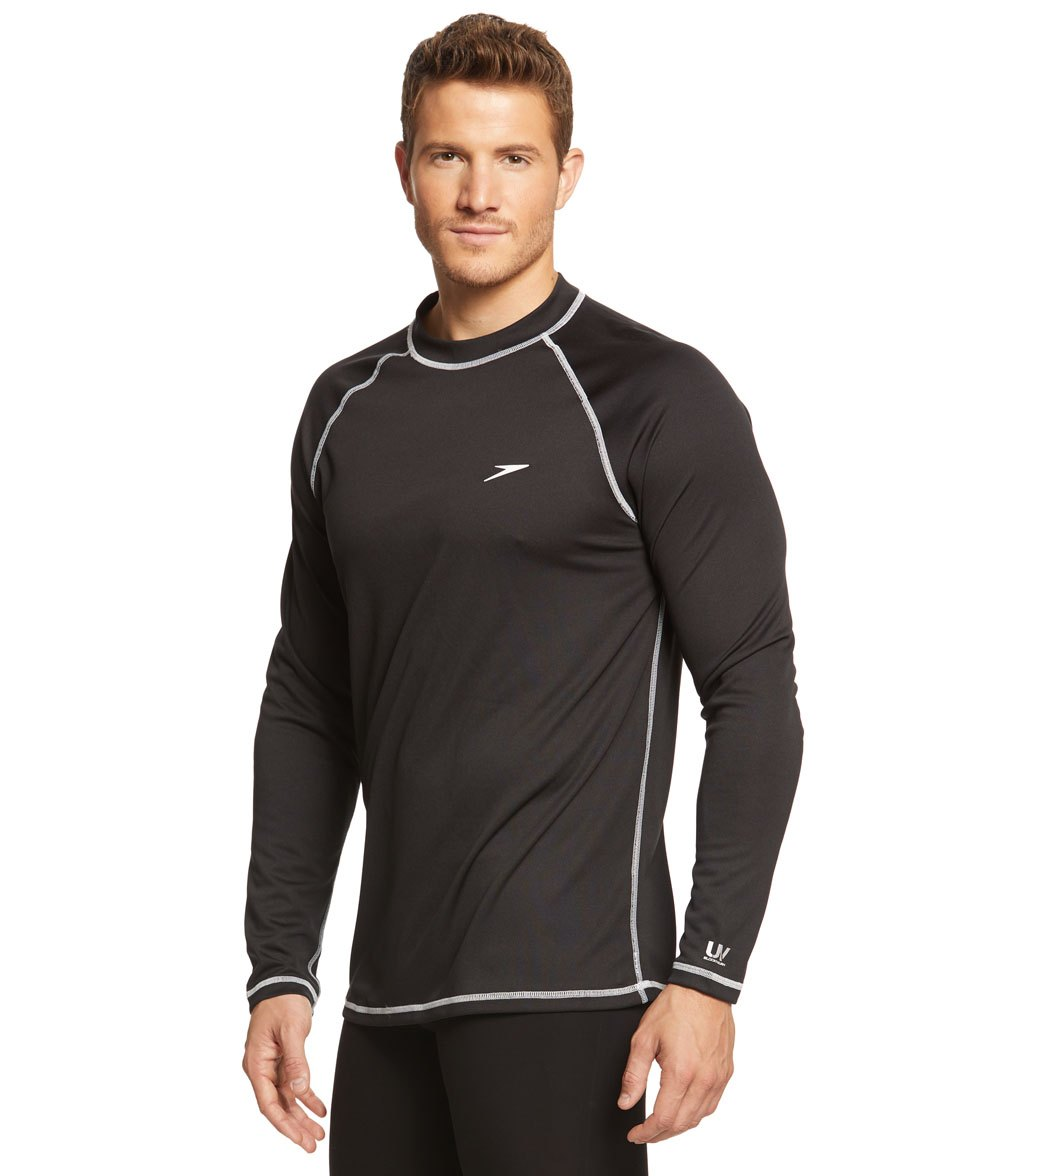 4ebd5bf5cb4 Speedo Men's Easy Long Sleeve Swim Shirt at SwimOutlet.com